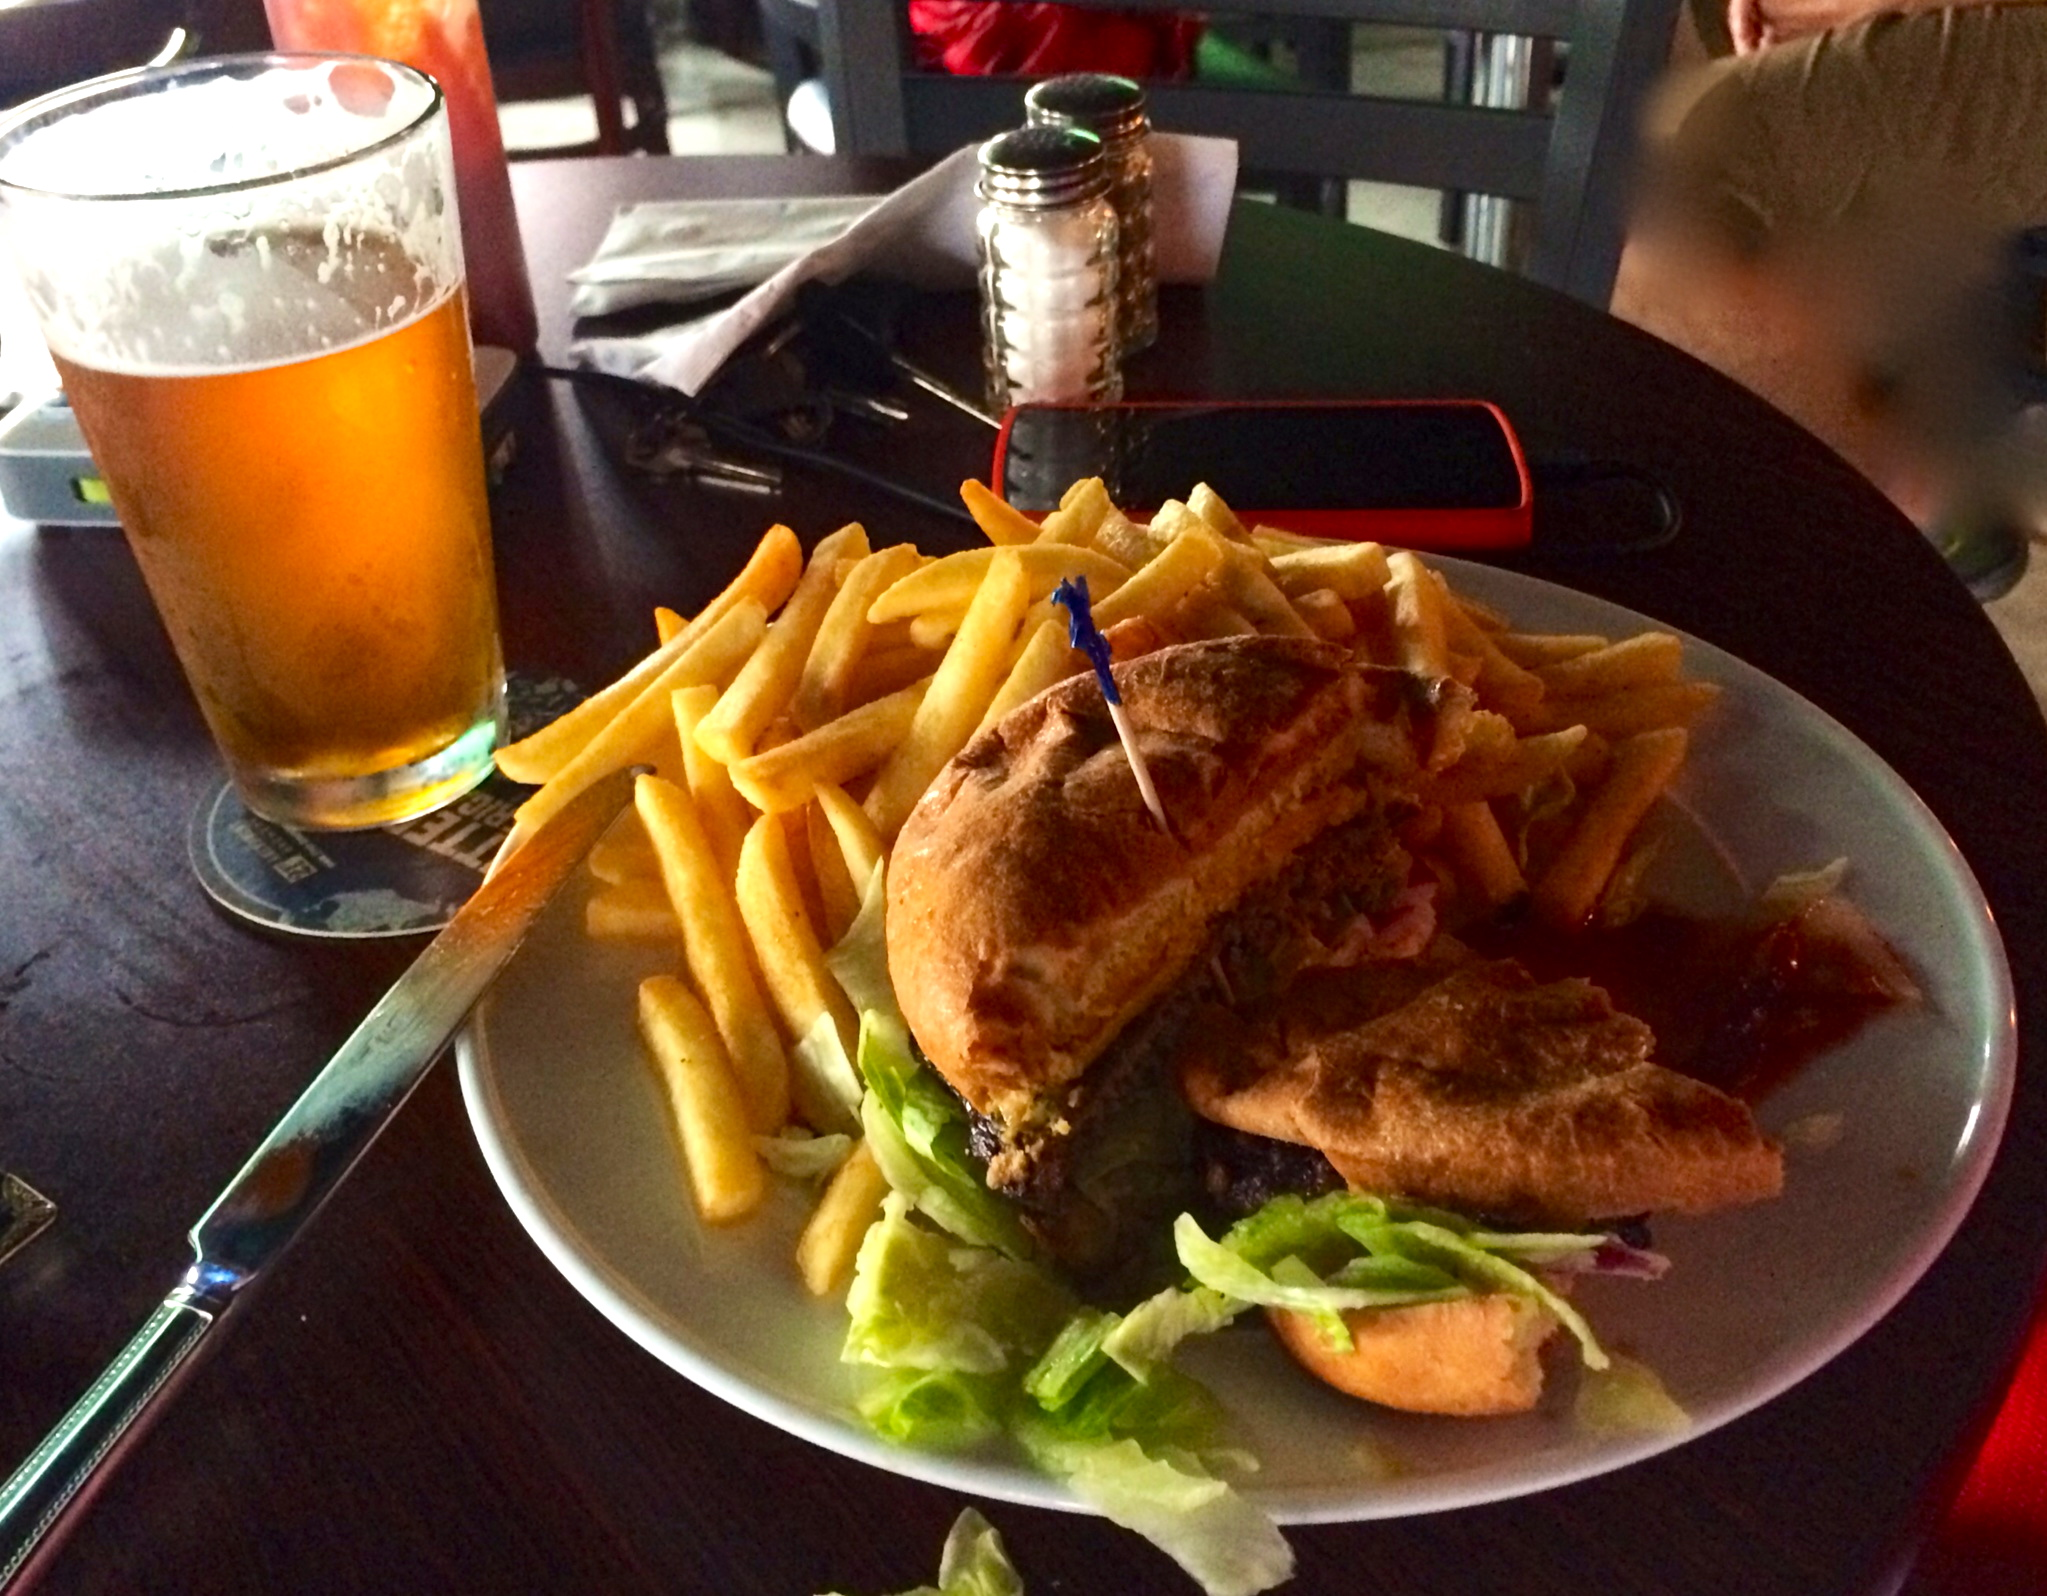 Burger and fries with a brew